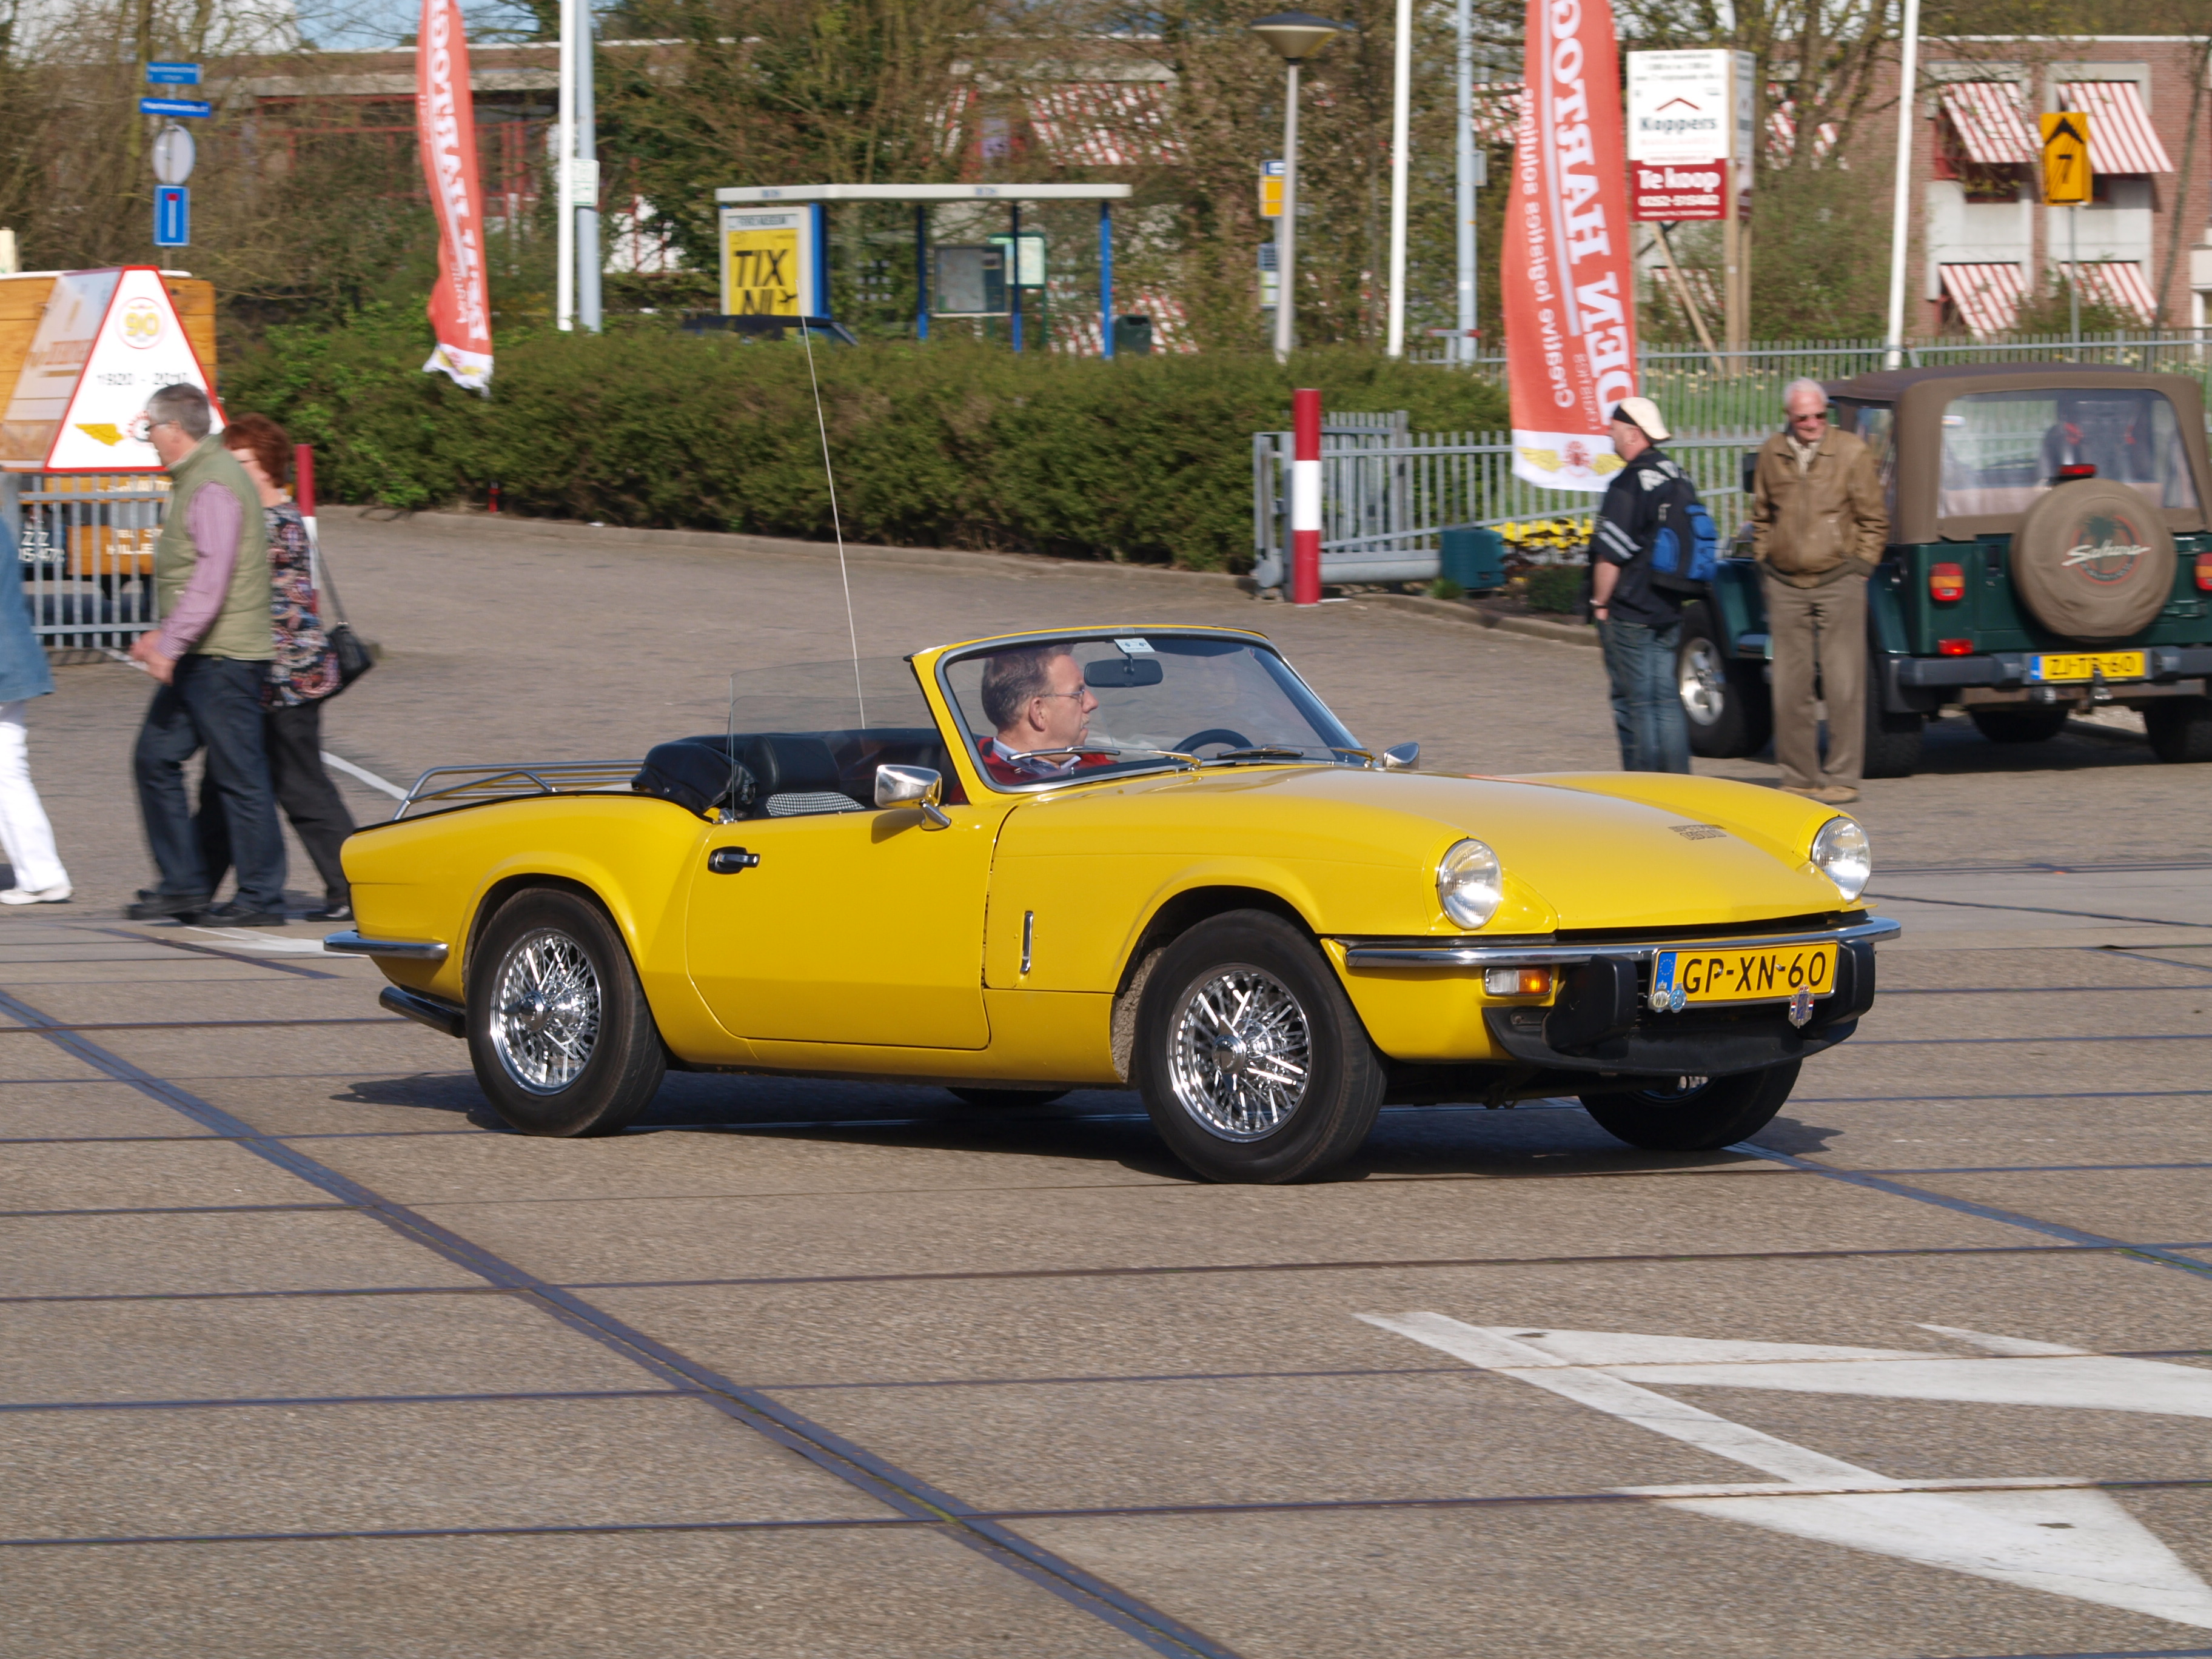 file 1978 triumph spitfire 1500 tc pic3 jpg wikimedia commons. Black Bedroom Furniture Sets. Home Design Ideas